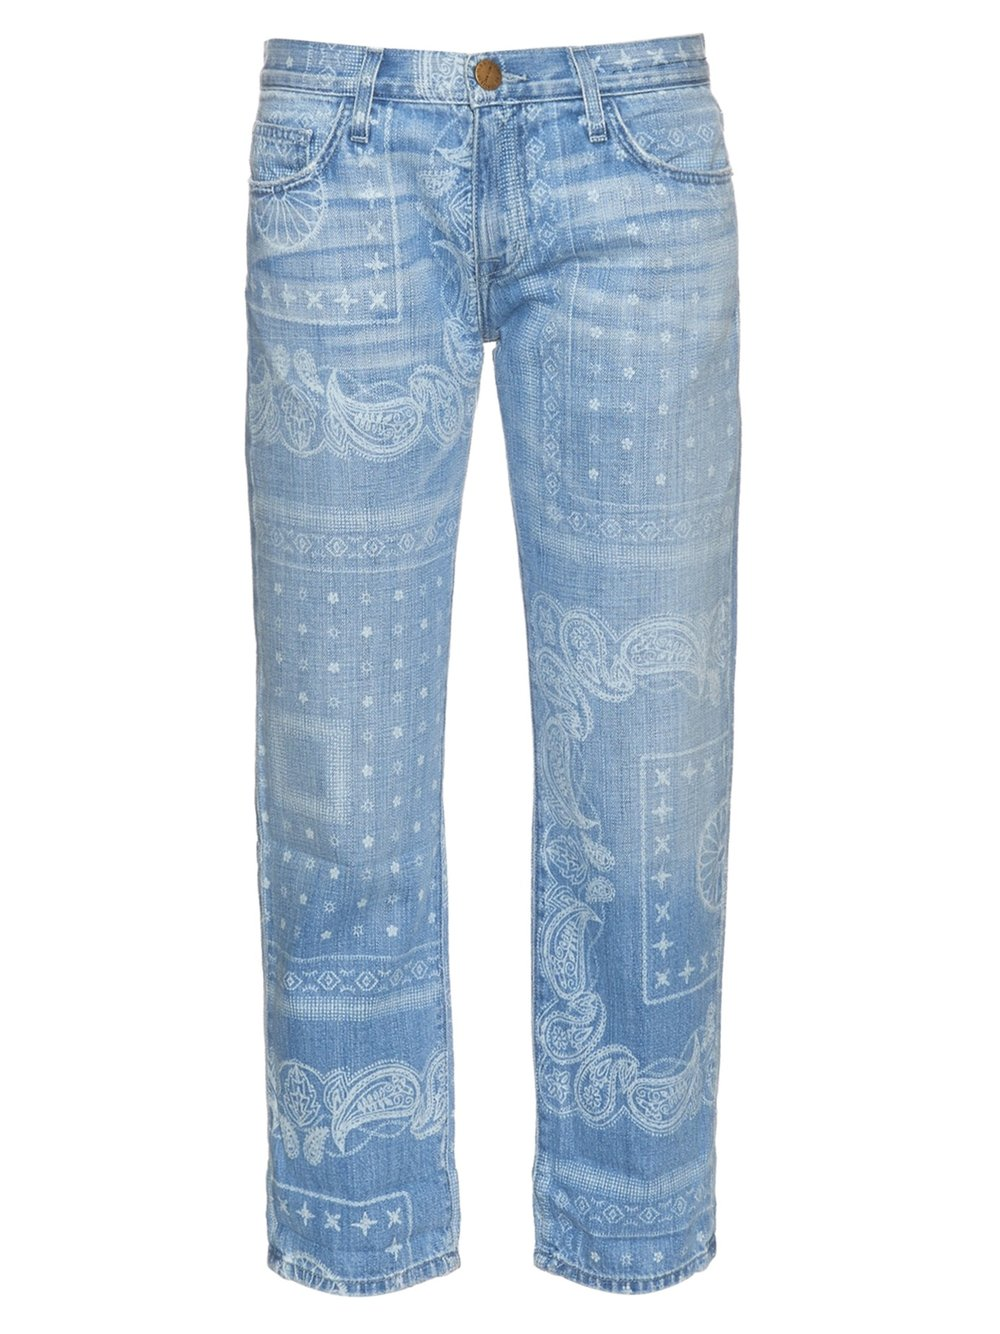 CURRENT/ELLIOT 'THE BOYFRIEND' BANDANA PRINT JEAN